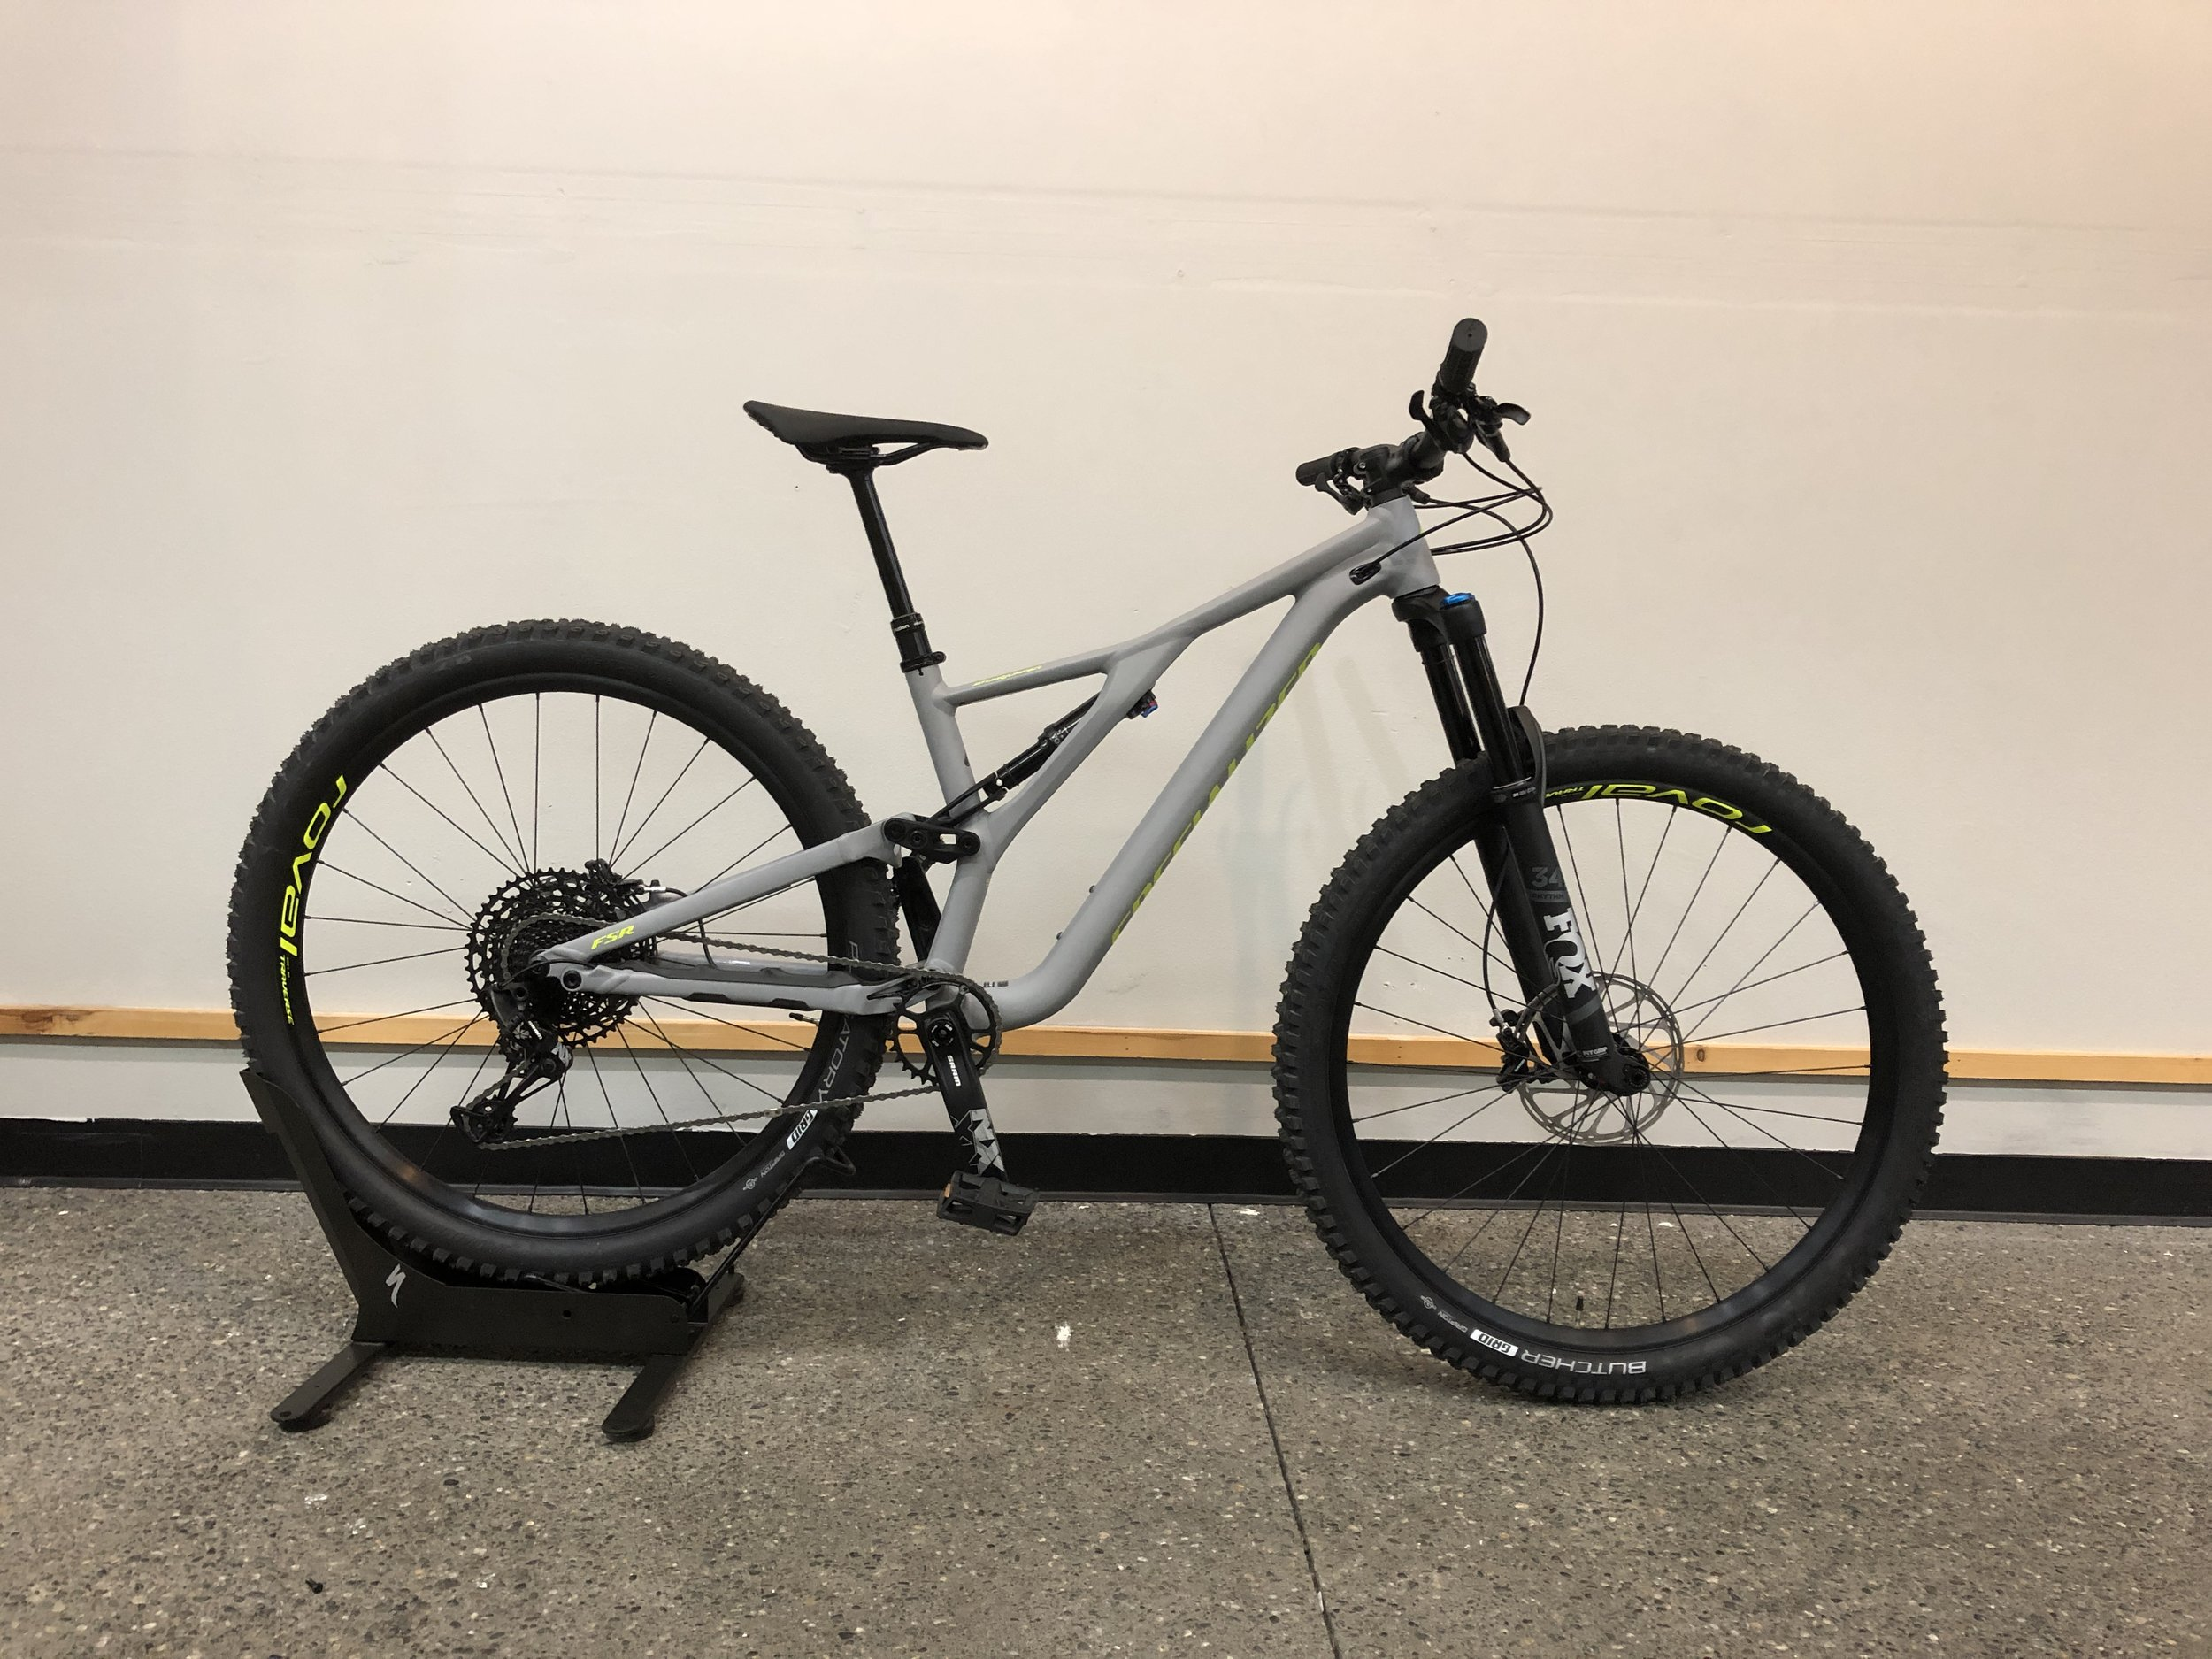 2019 Specialized Stumpjumper Comp 29 $3320 Demo Available - Sizes Available : Large